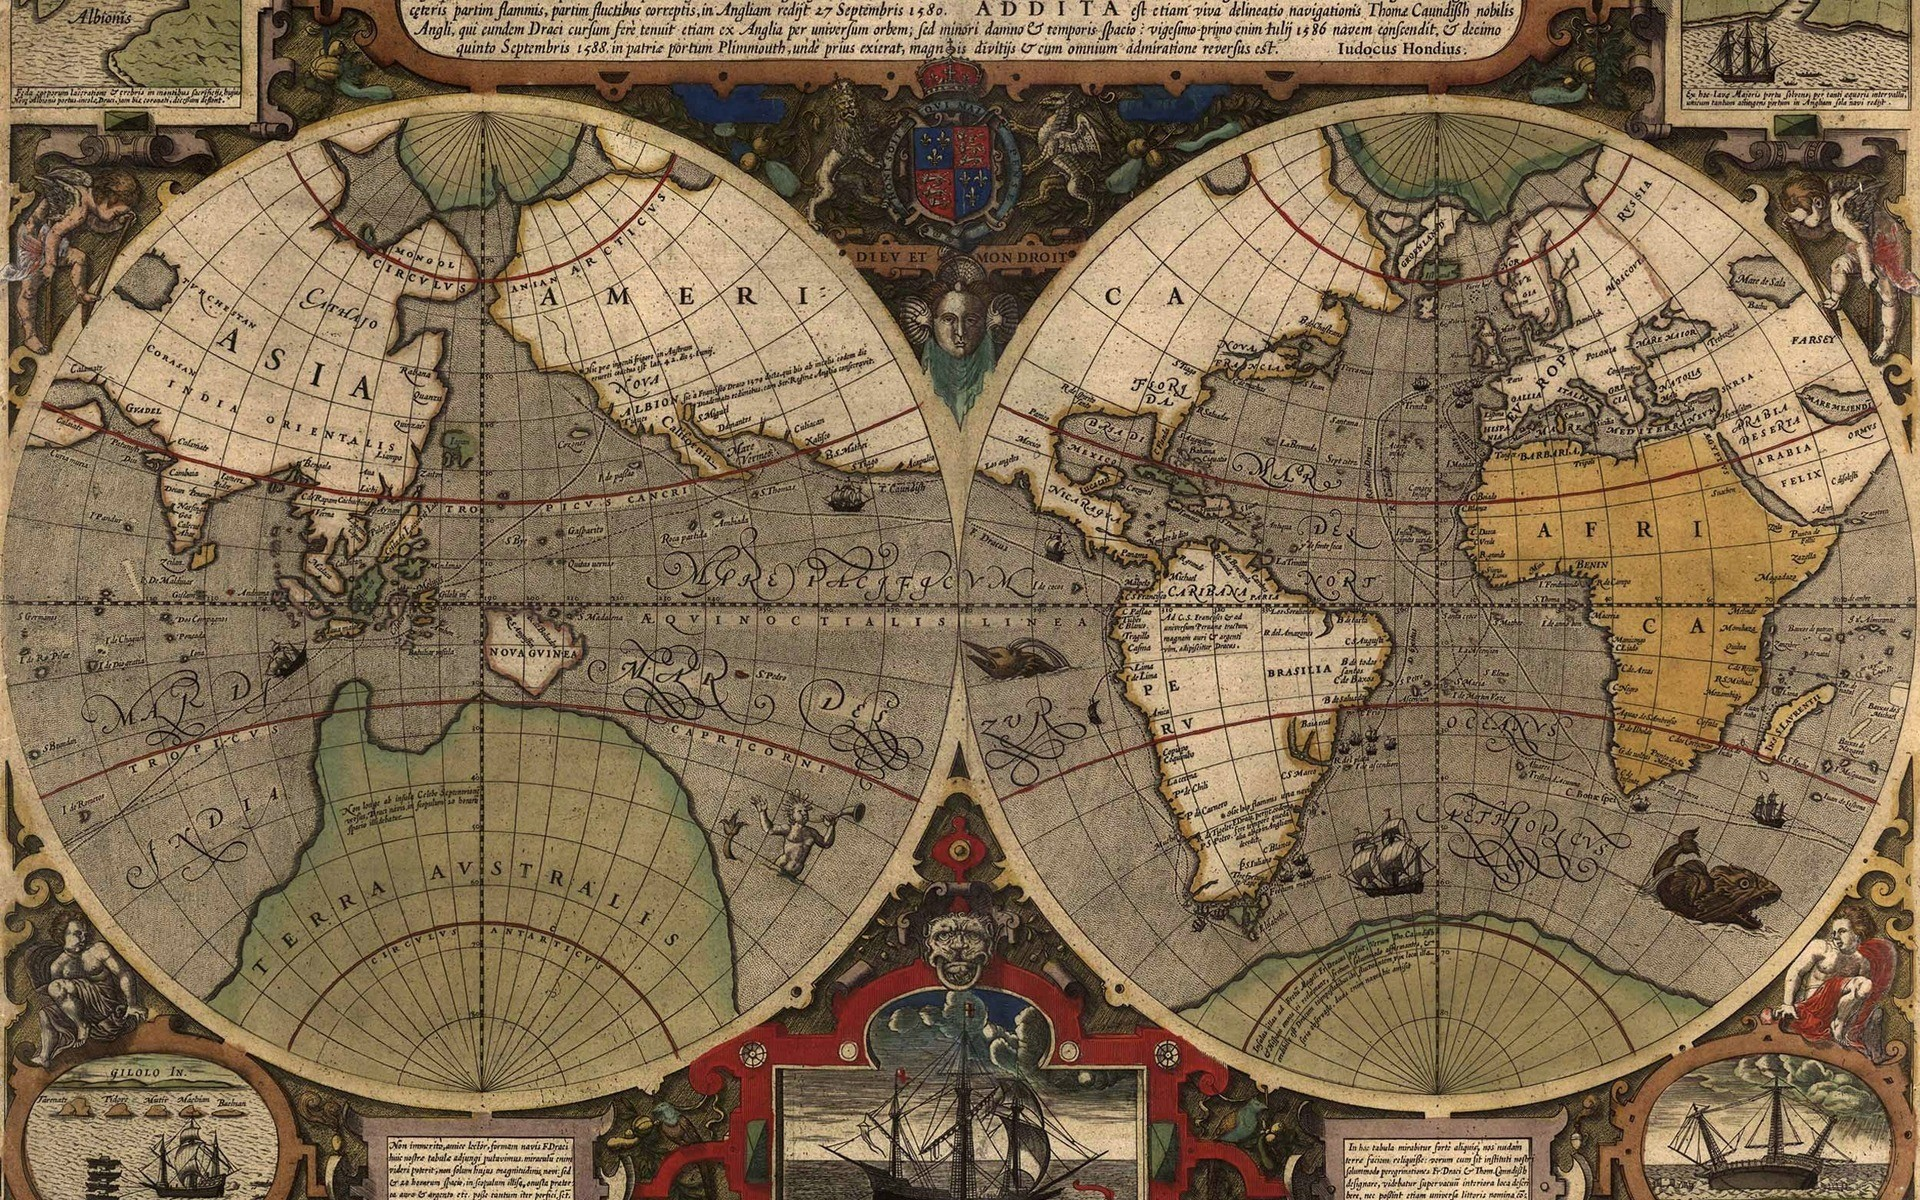 Old world map desktop wallpaper 47 images 1920x1200 wallpaper map old maps world leprosy hd desktop wallpapers gumiabroncs Image collections